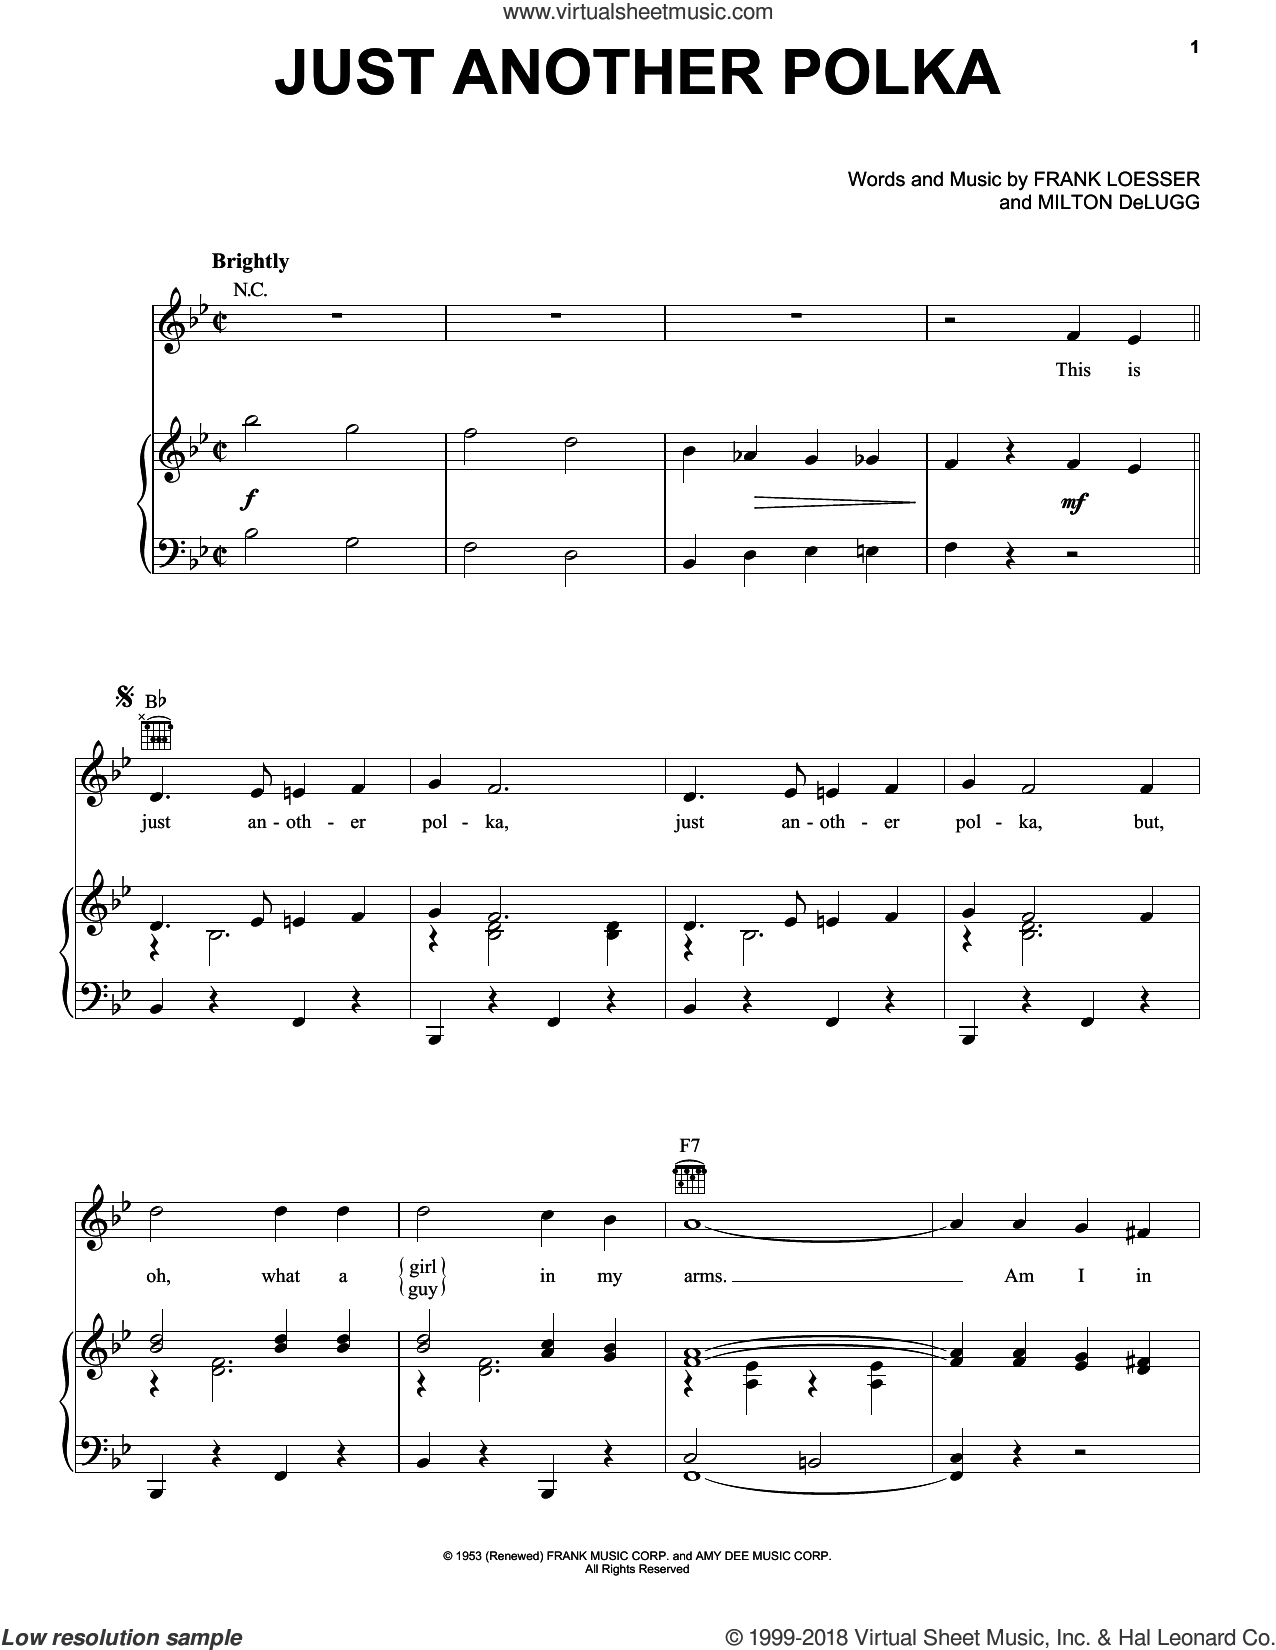 Just Another Polka sheet music for voice, piano or guitar by Frank Loesser and Milton DeLugg, intermediate skill level